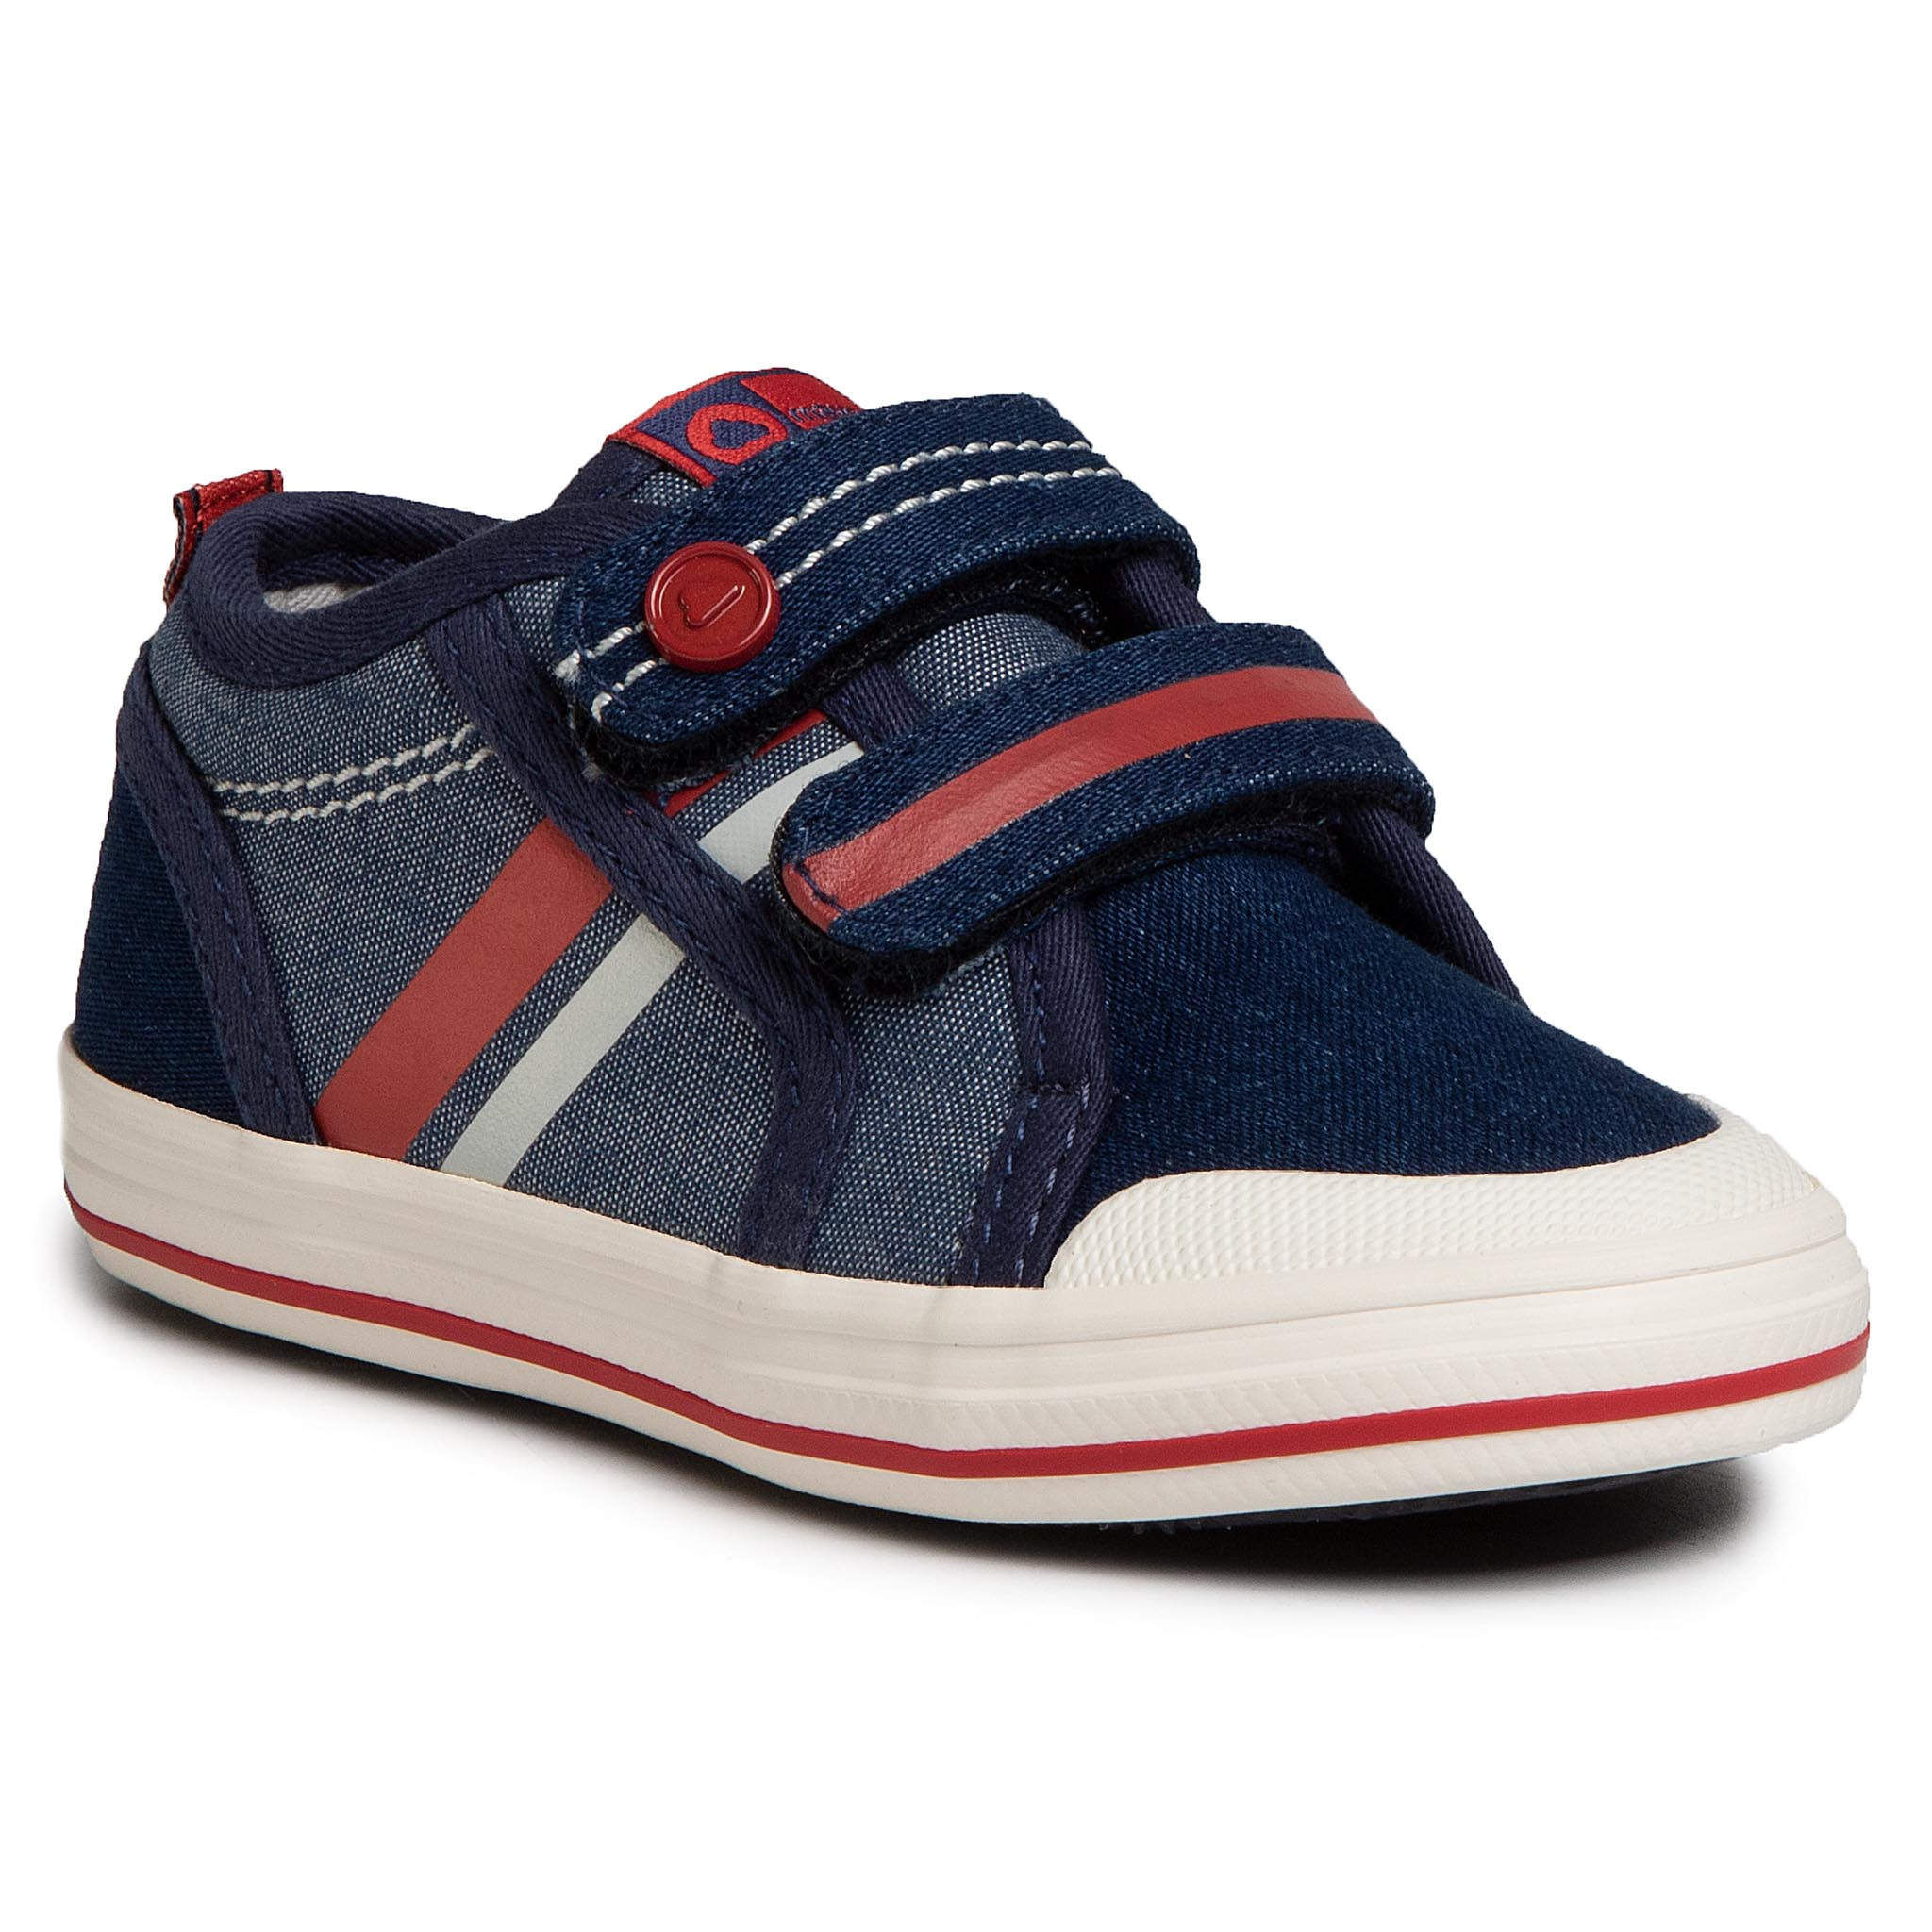 Sneakers MAYORAL - 41188 Jeans 37